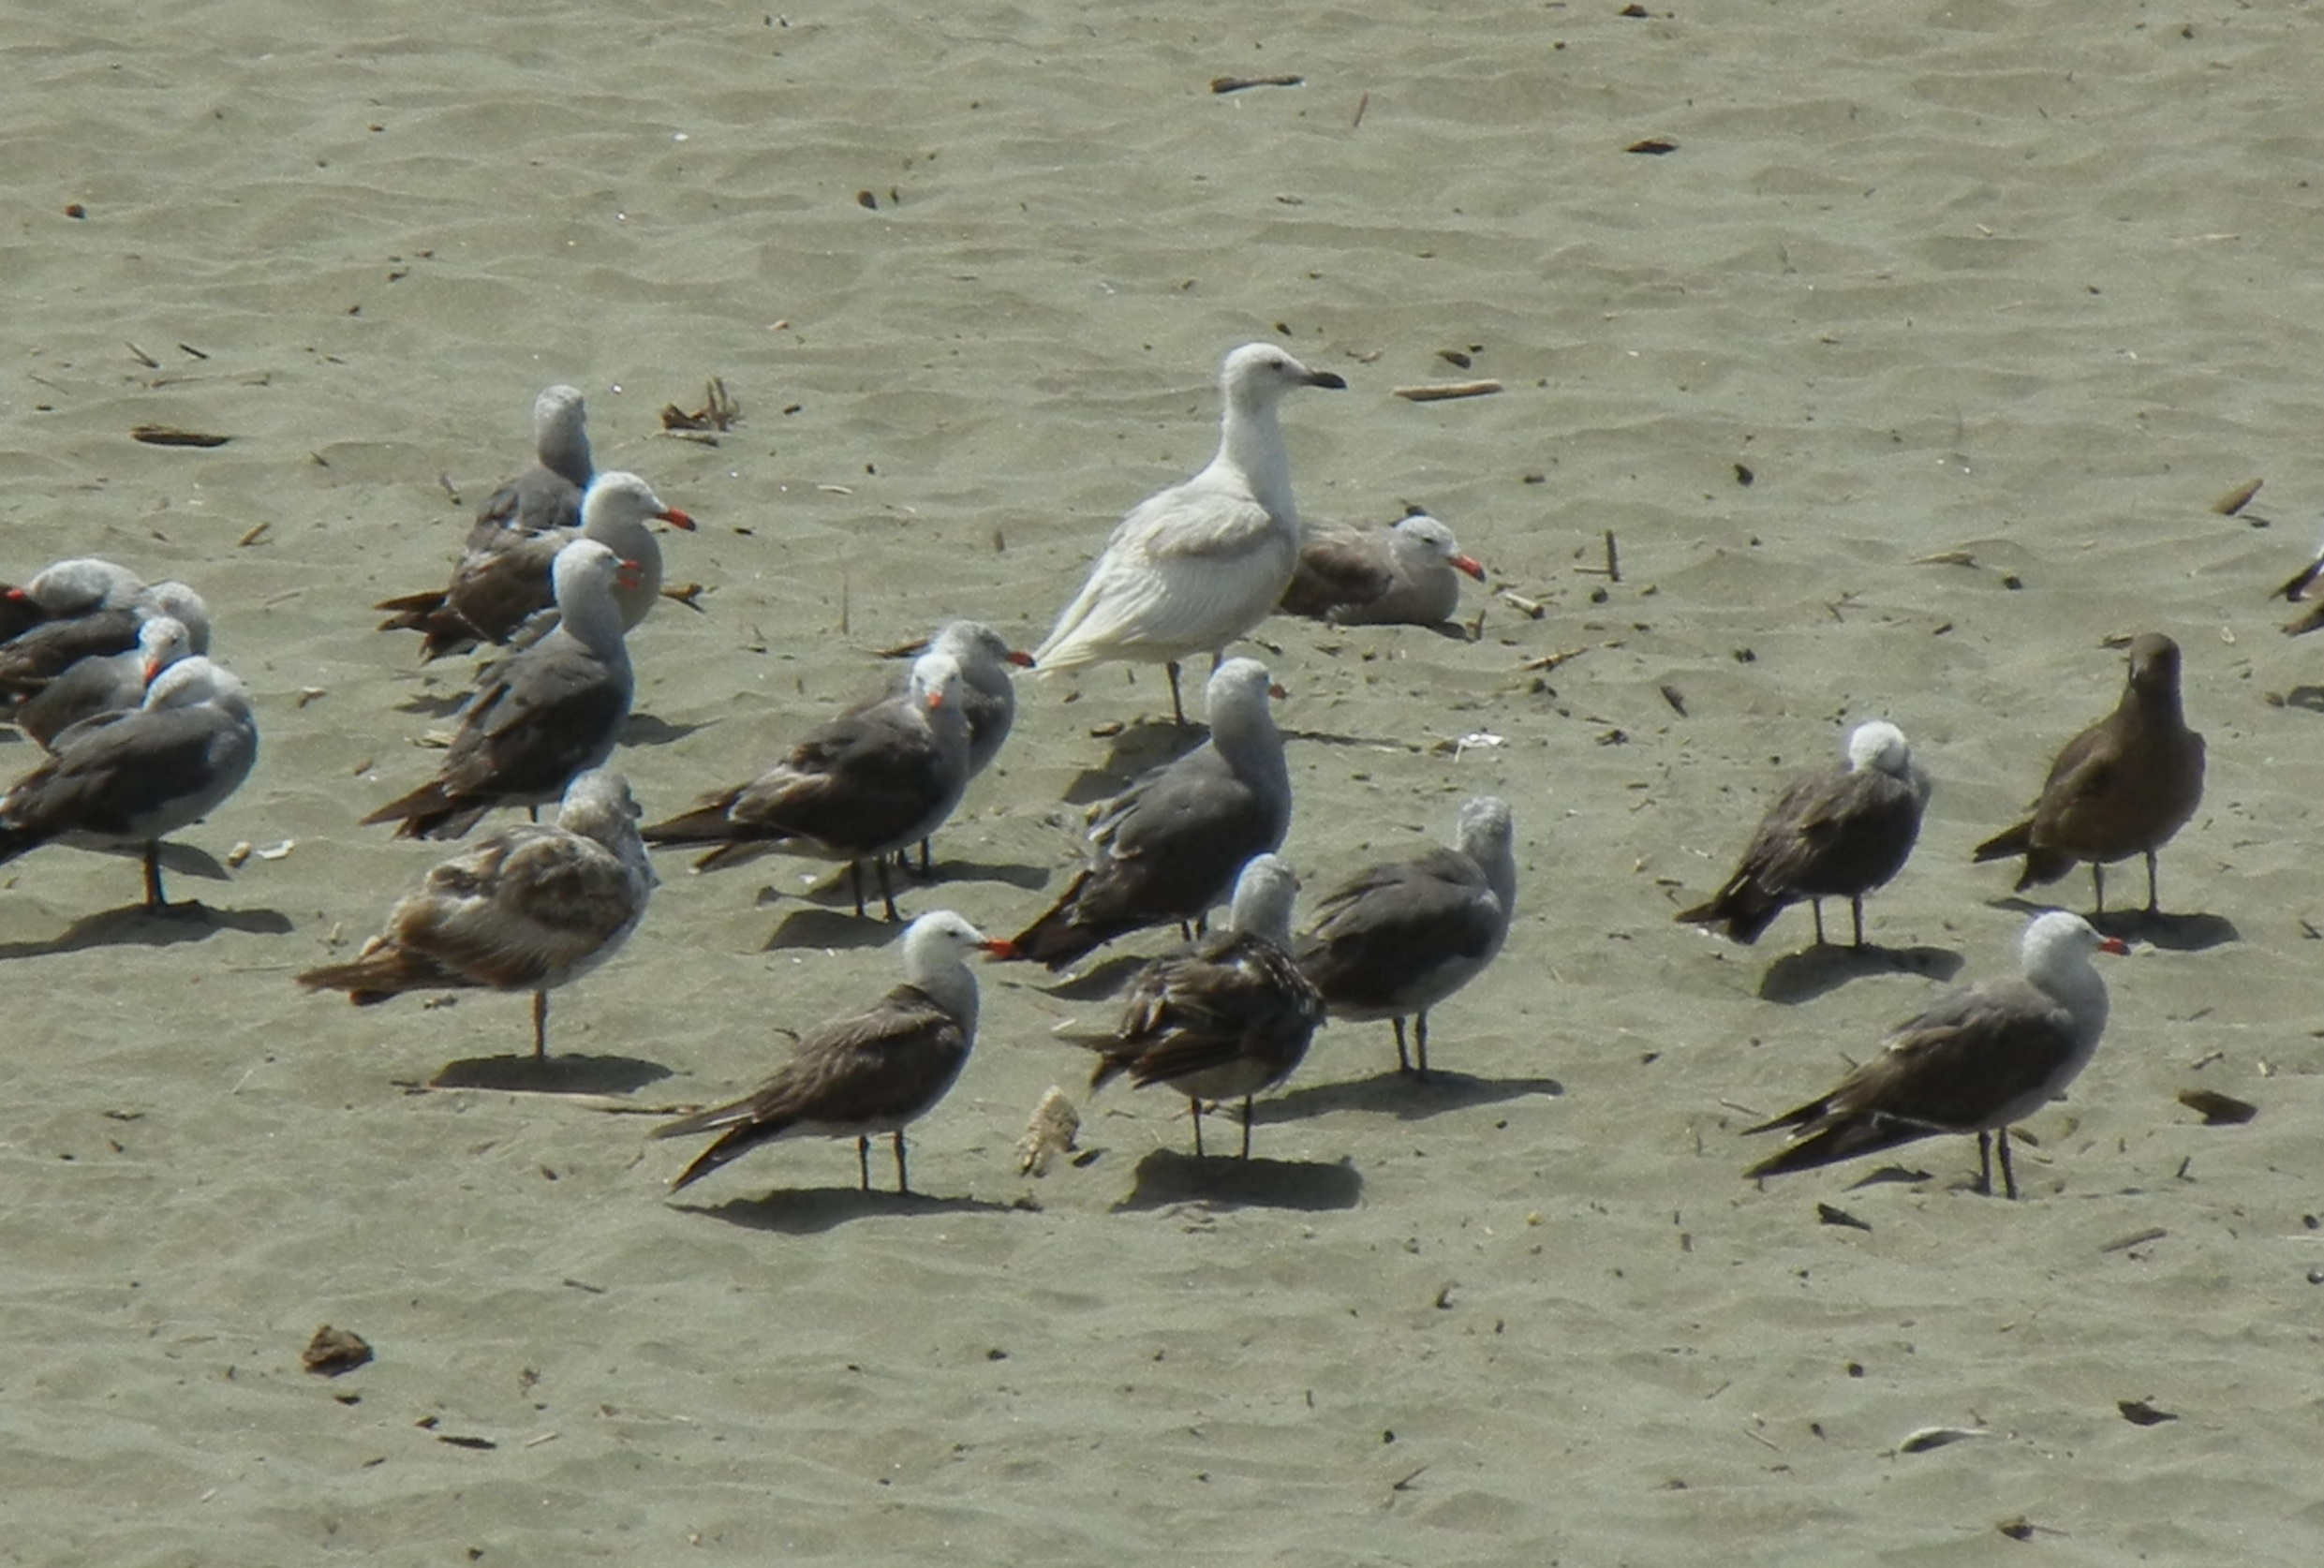 Tricky bleached Glaucous-winged Gull, at Golden Gate Beachfront, CA, July 2011